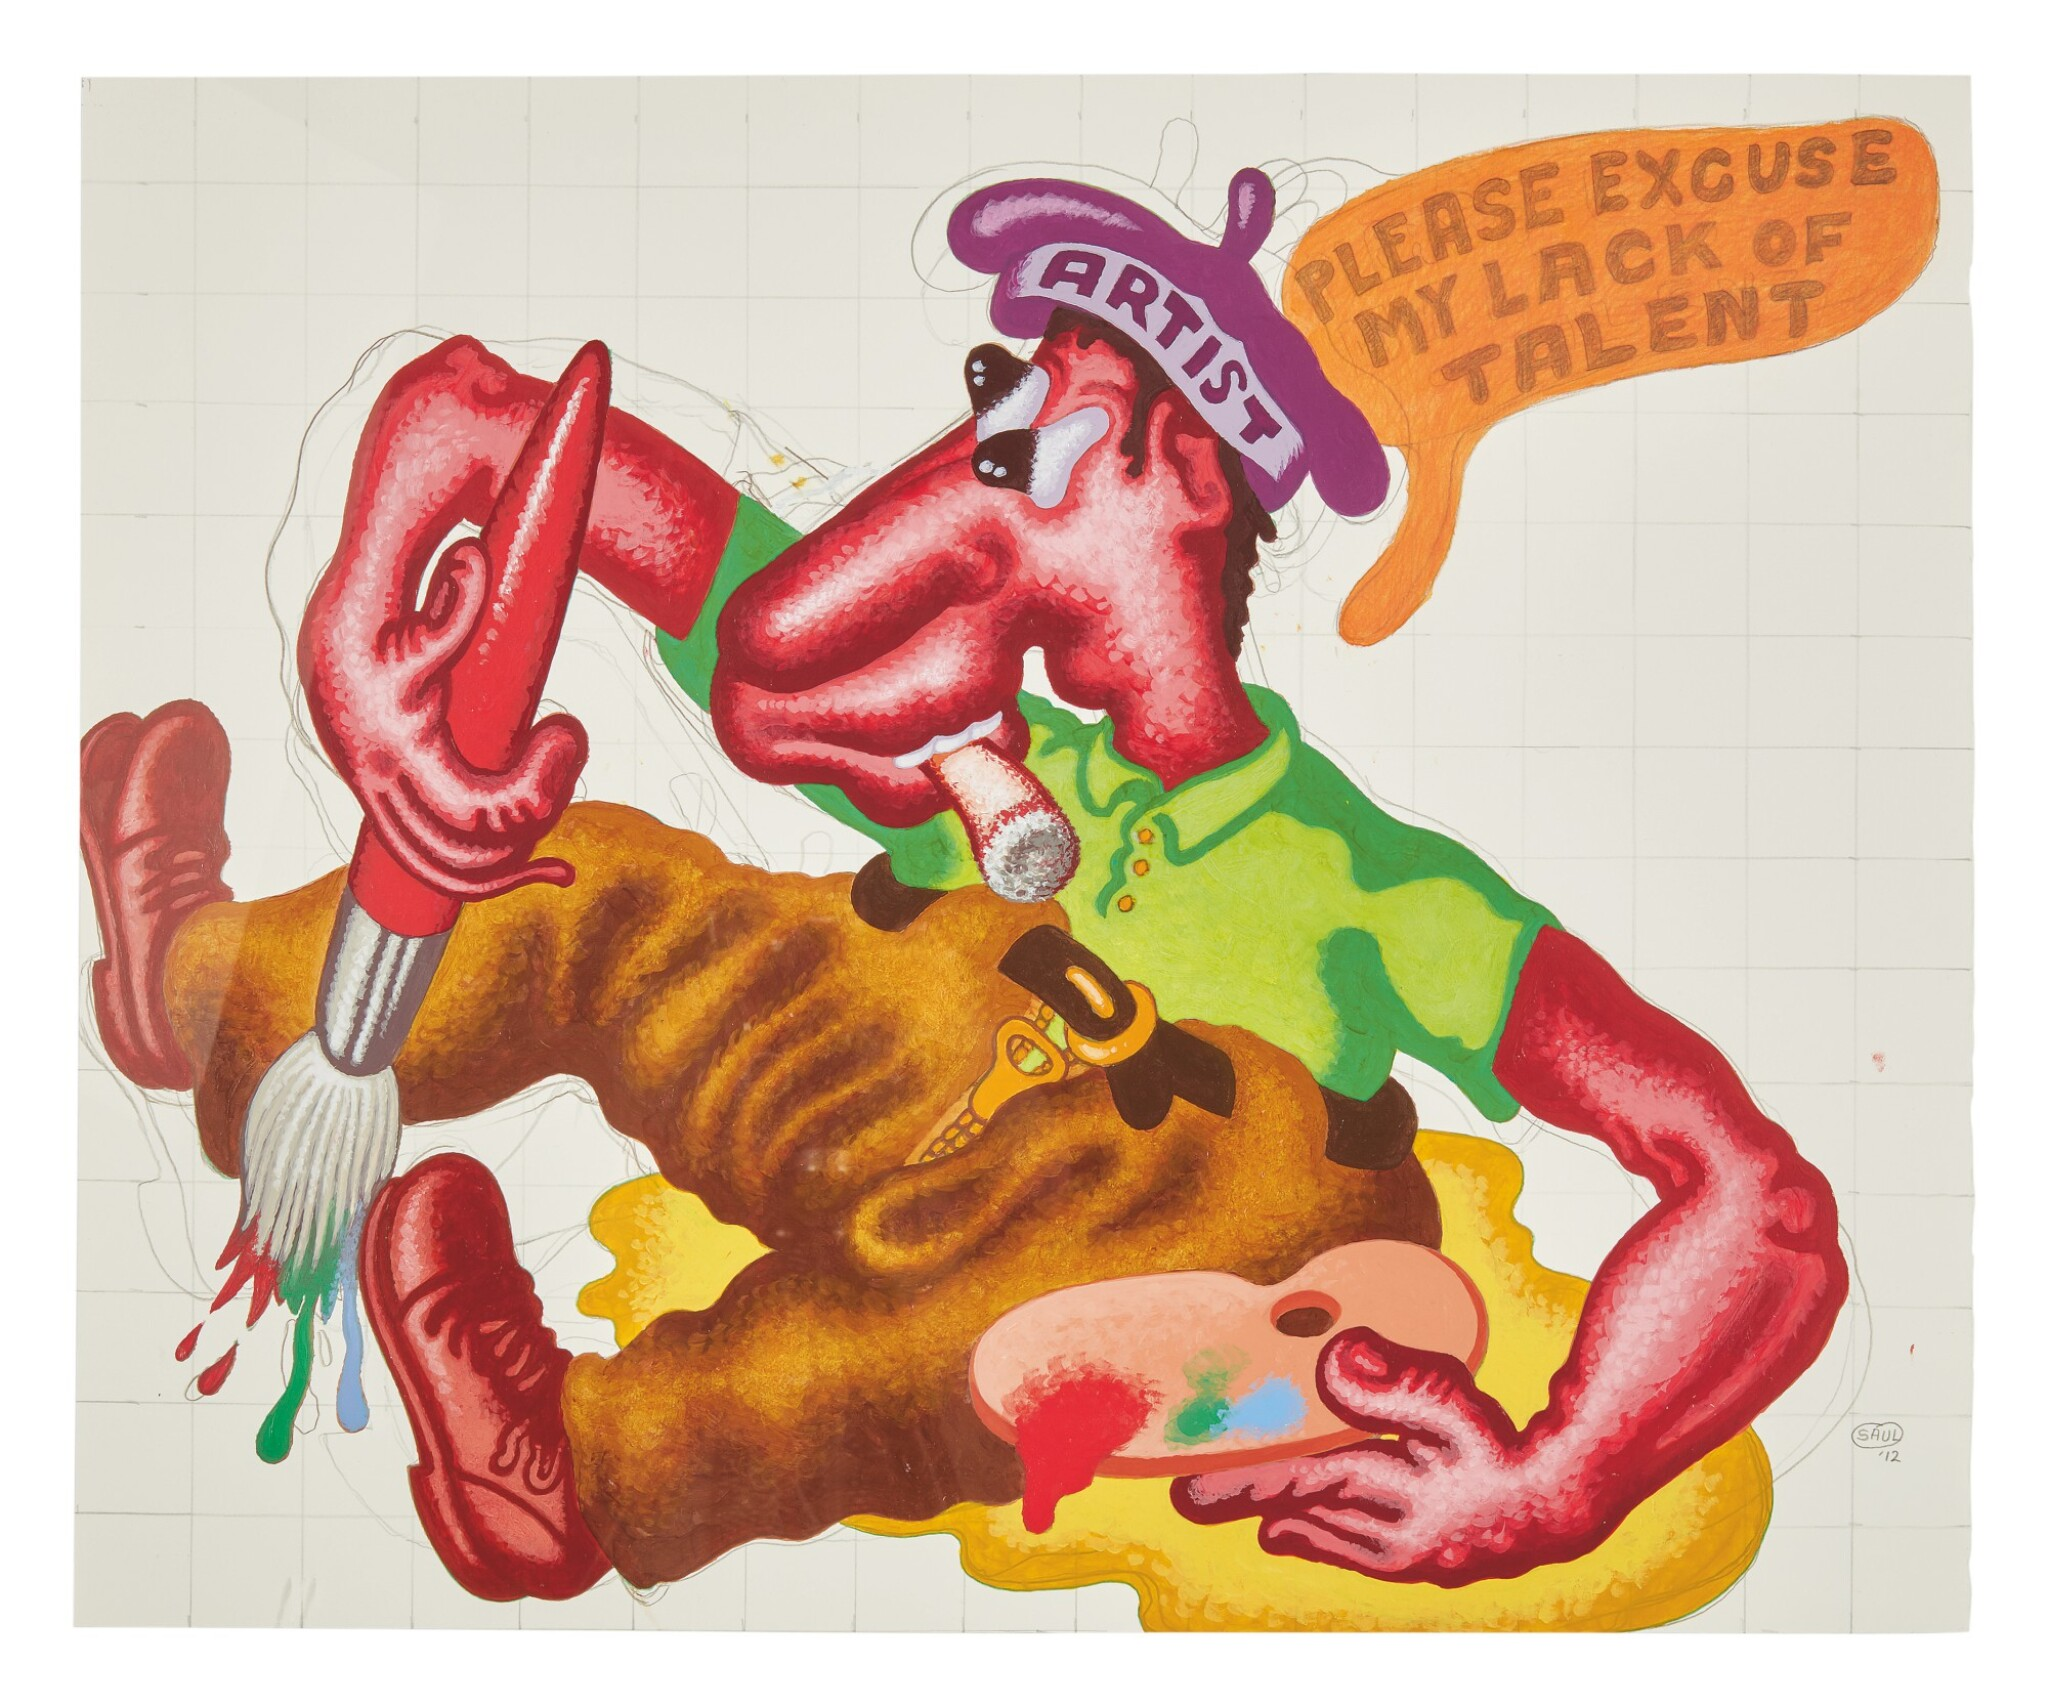 PETER SAUL | PLEASE EXCUSE MY LACK OF TALENT